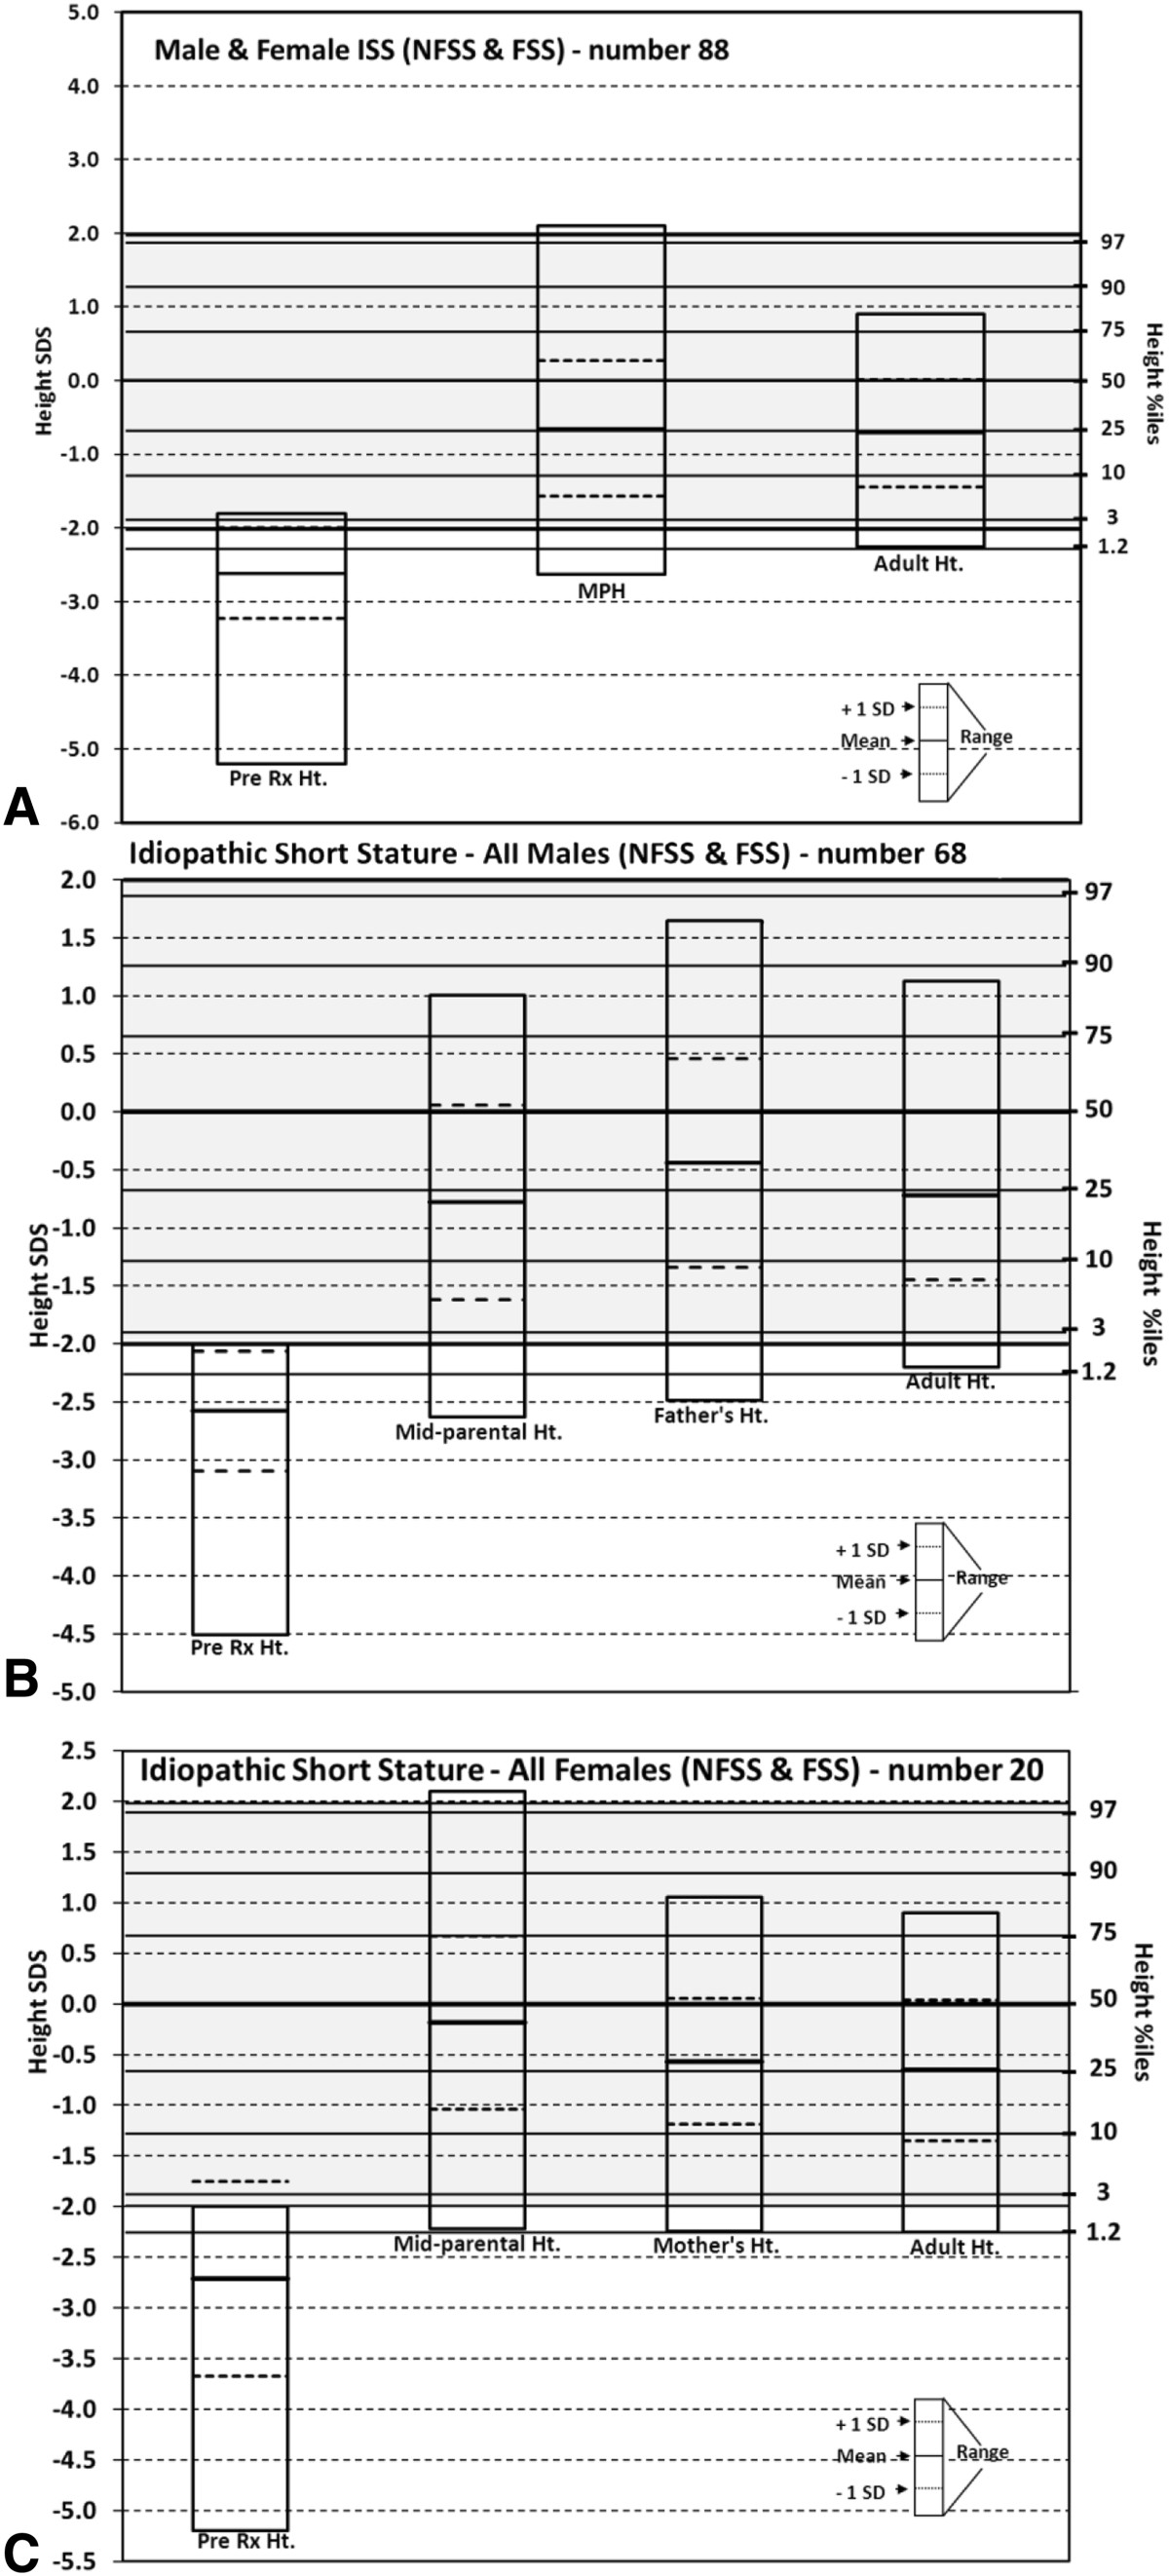 https://static-content.springer.com/image/art%3A10.1186%2F1687-9856-2014-15/MediaObjects/13633_2014_Article_352_Fig2_HTML.jpg